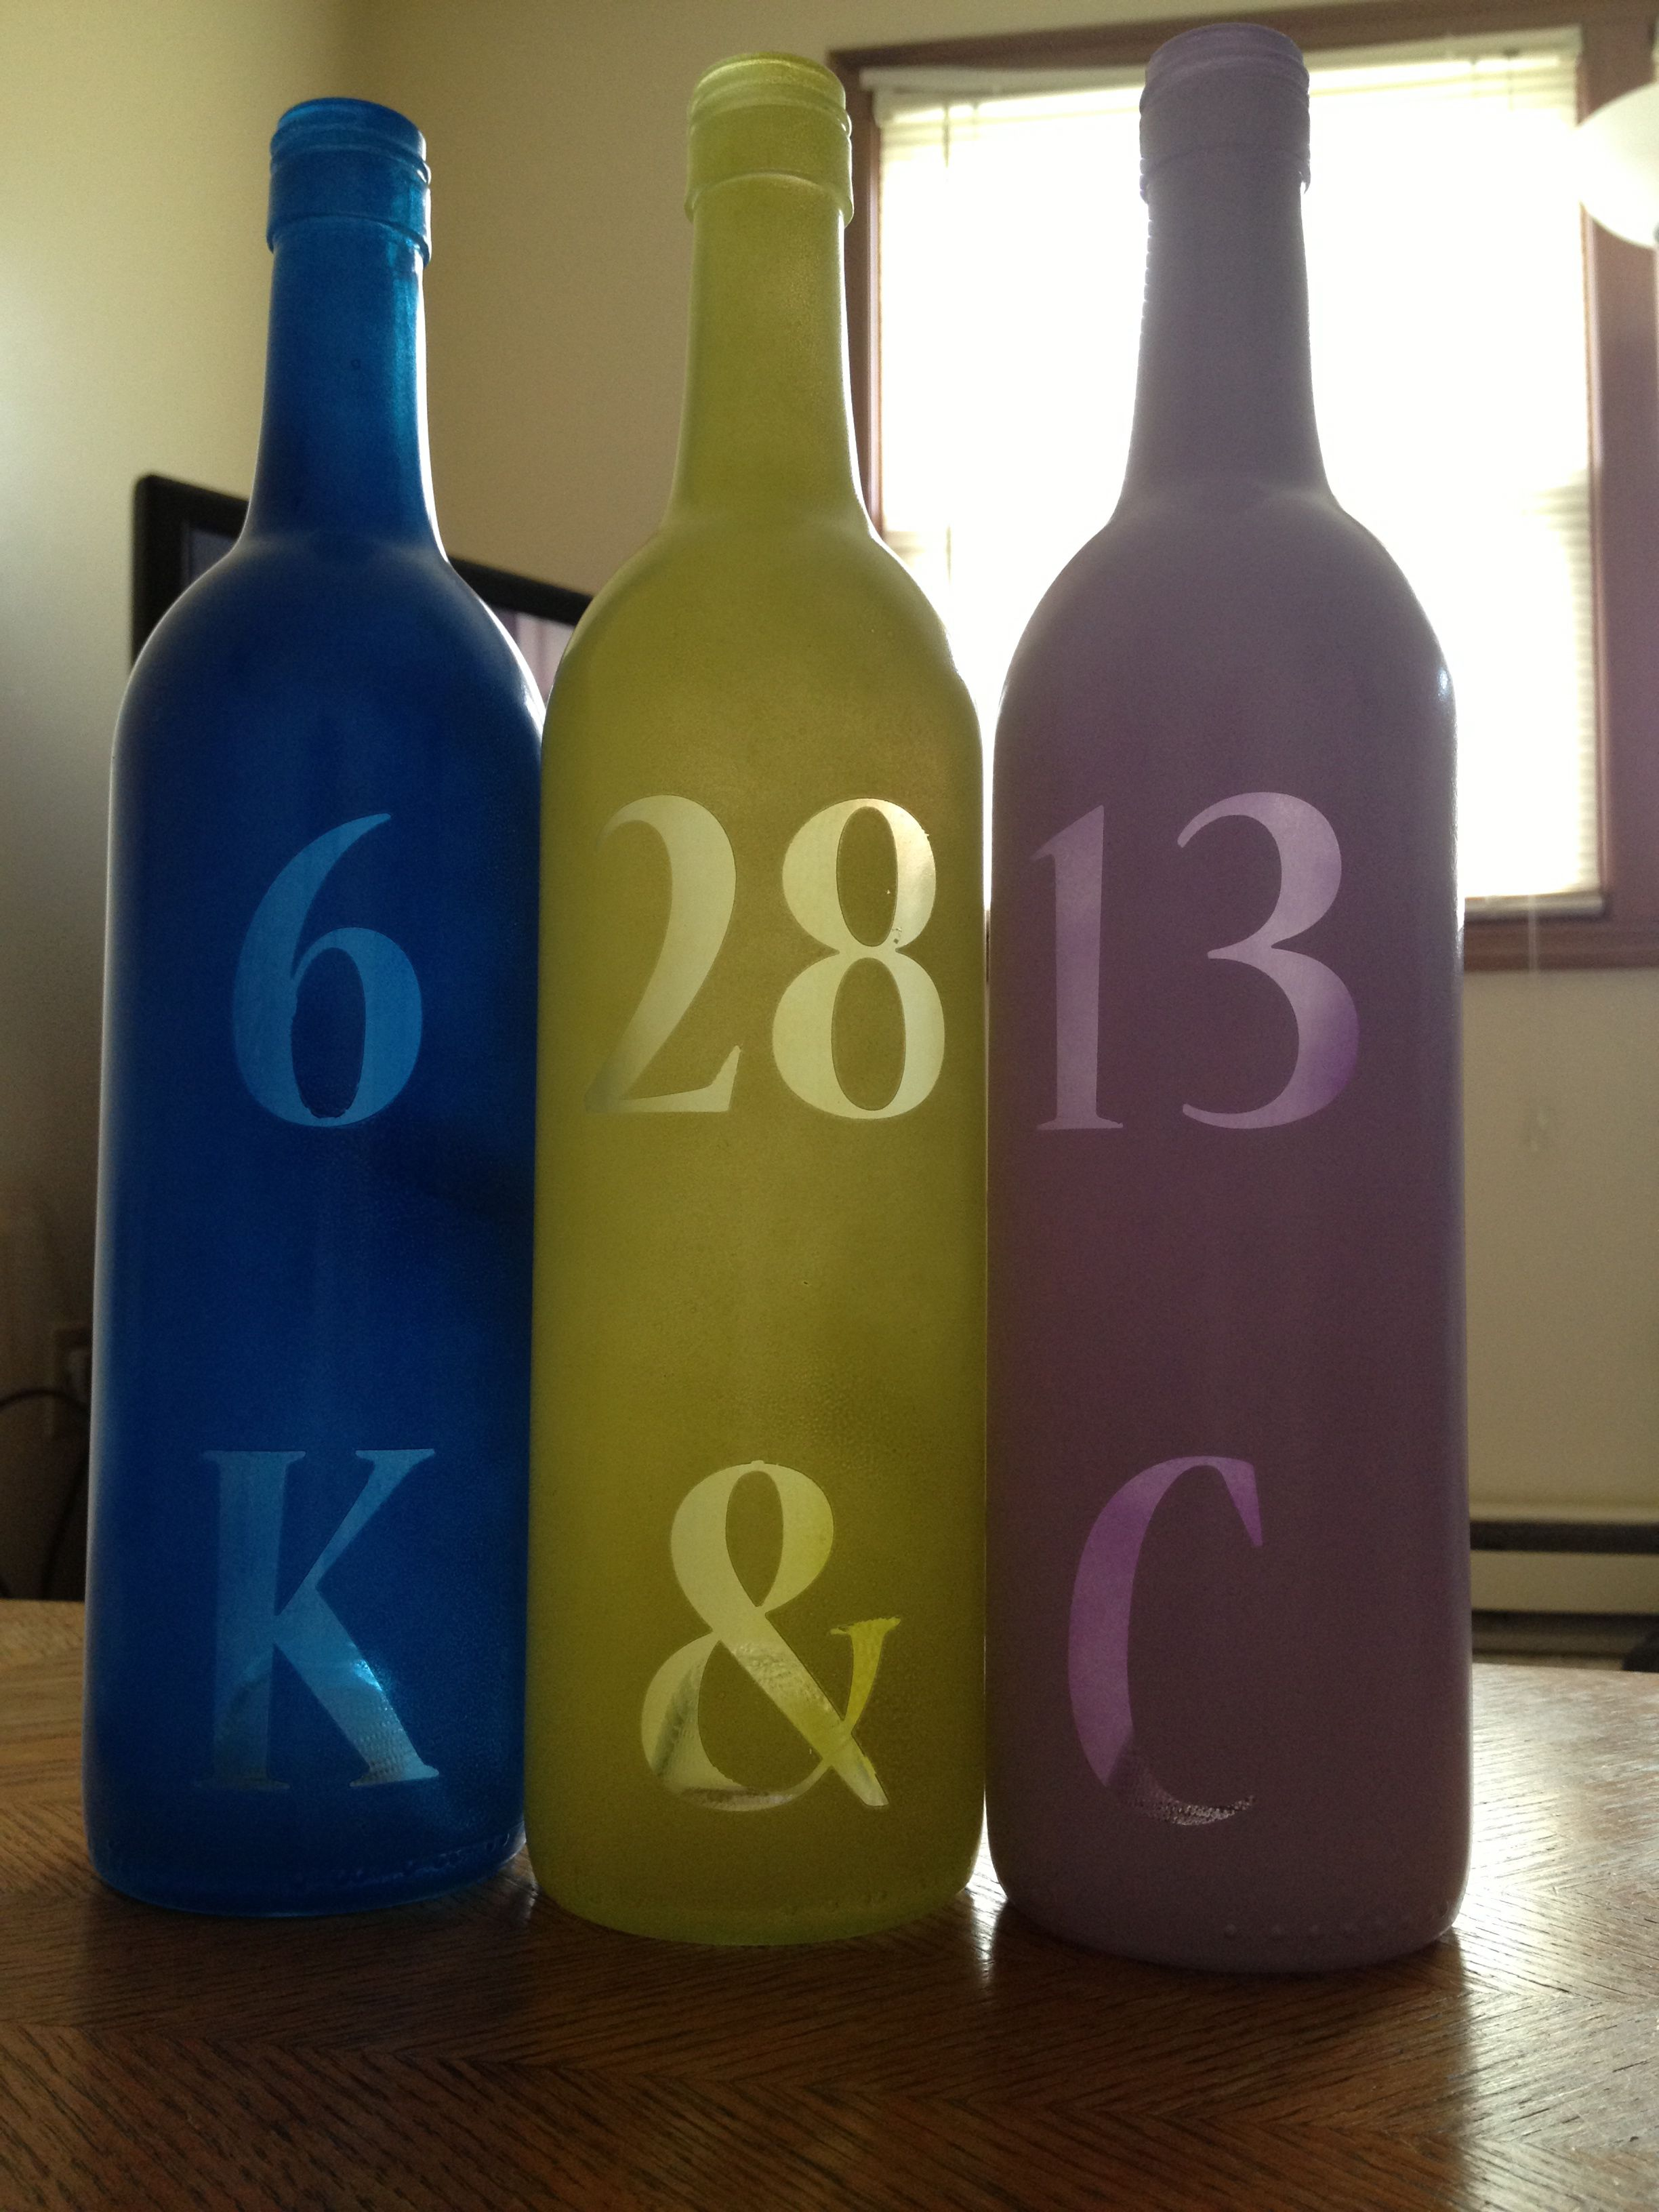 Wedding Decorations Re Wedding Gift Re Used Wine Bottles Wedding Date Initials Of The